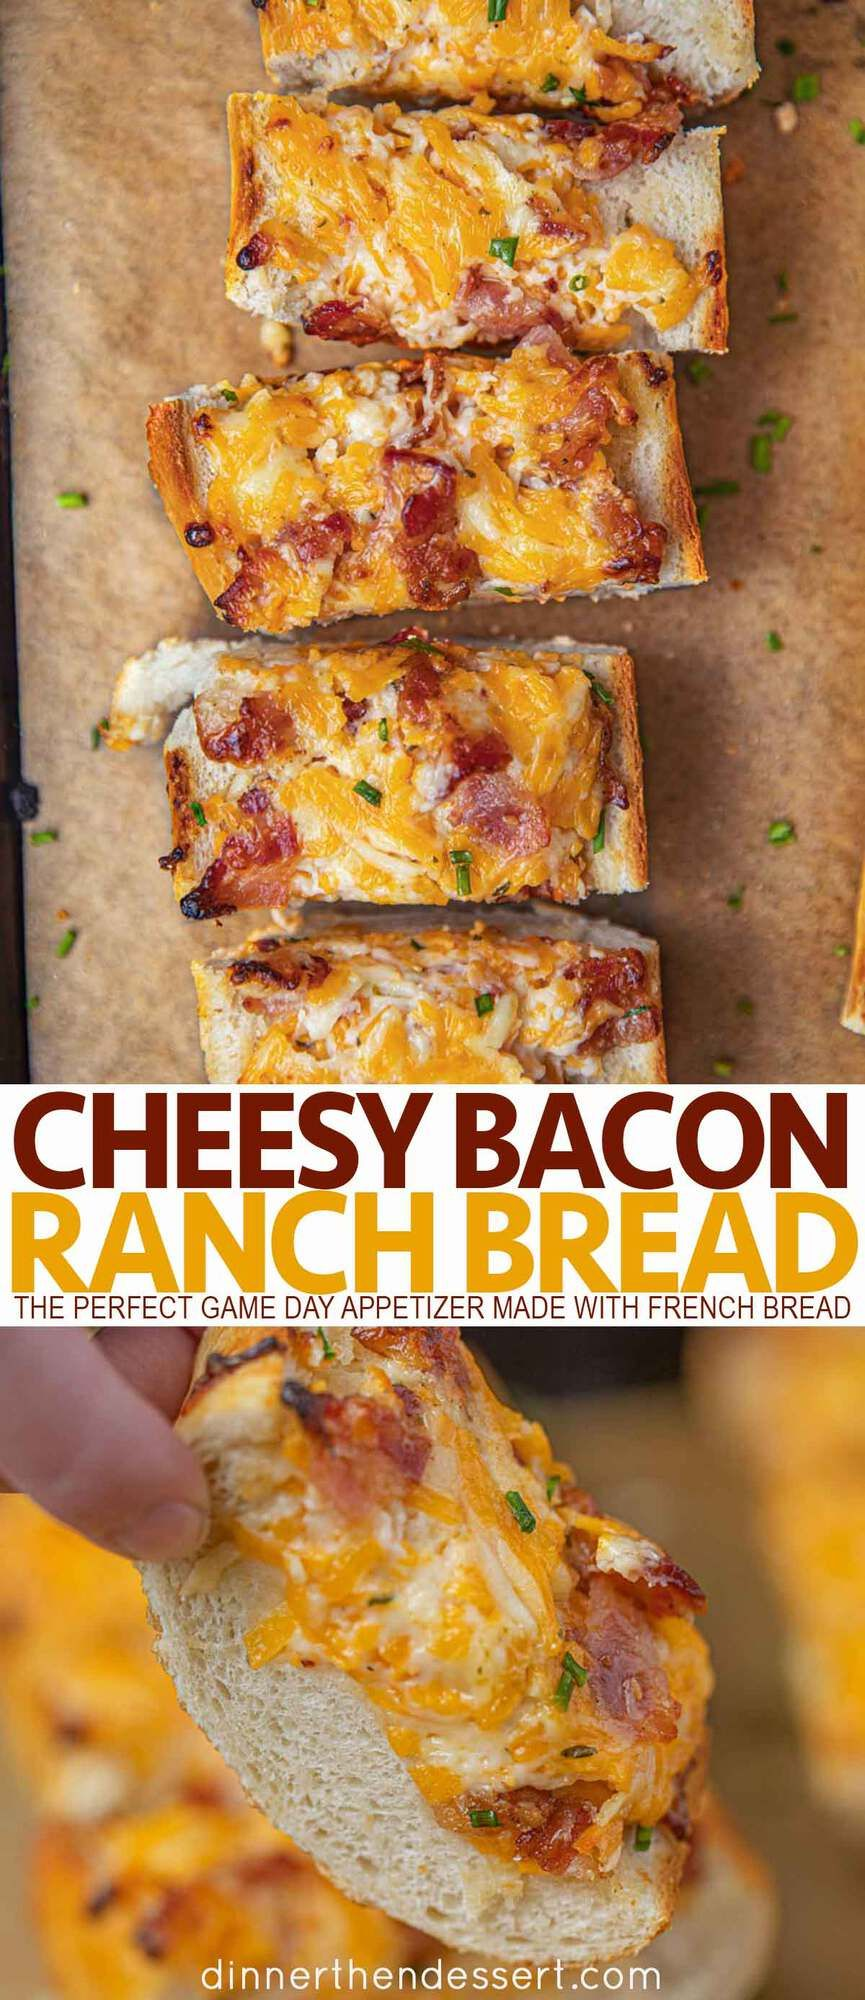 Easy Cheesy Bacon Ranch Bread (Just 15 minutes!) - Dinner, then Dessert